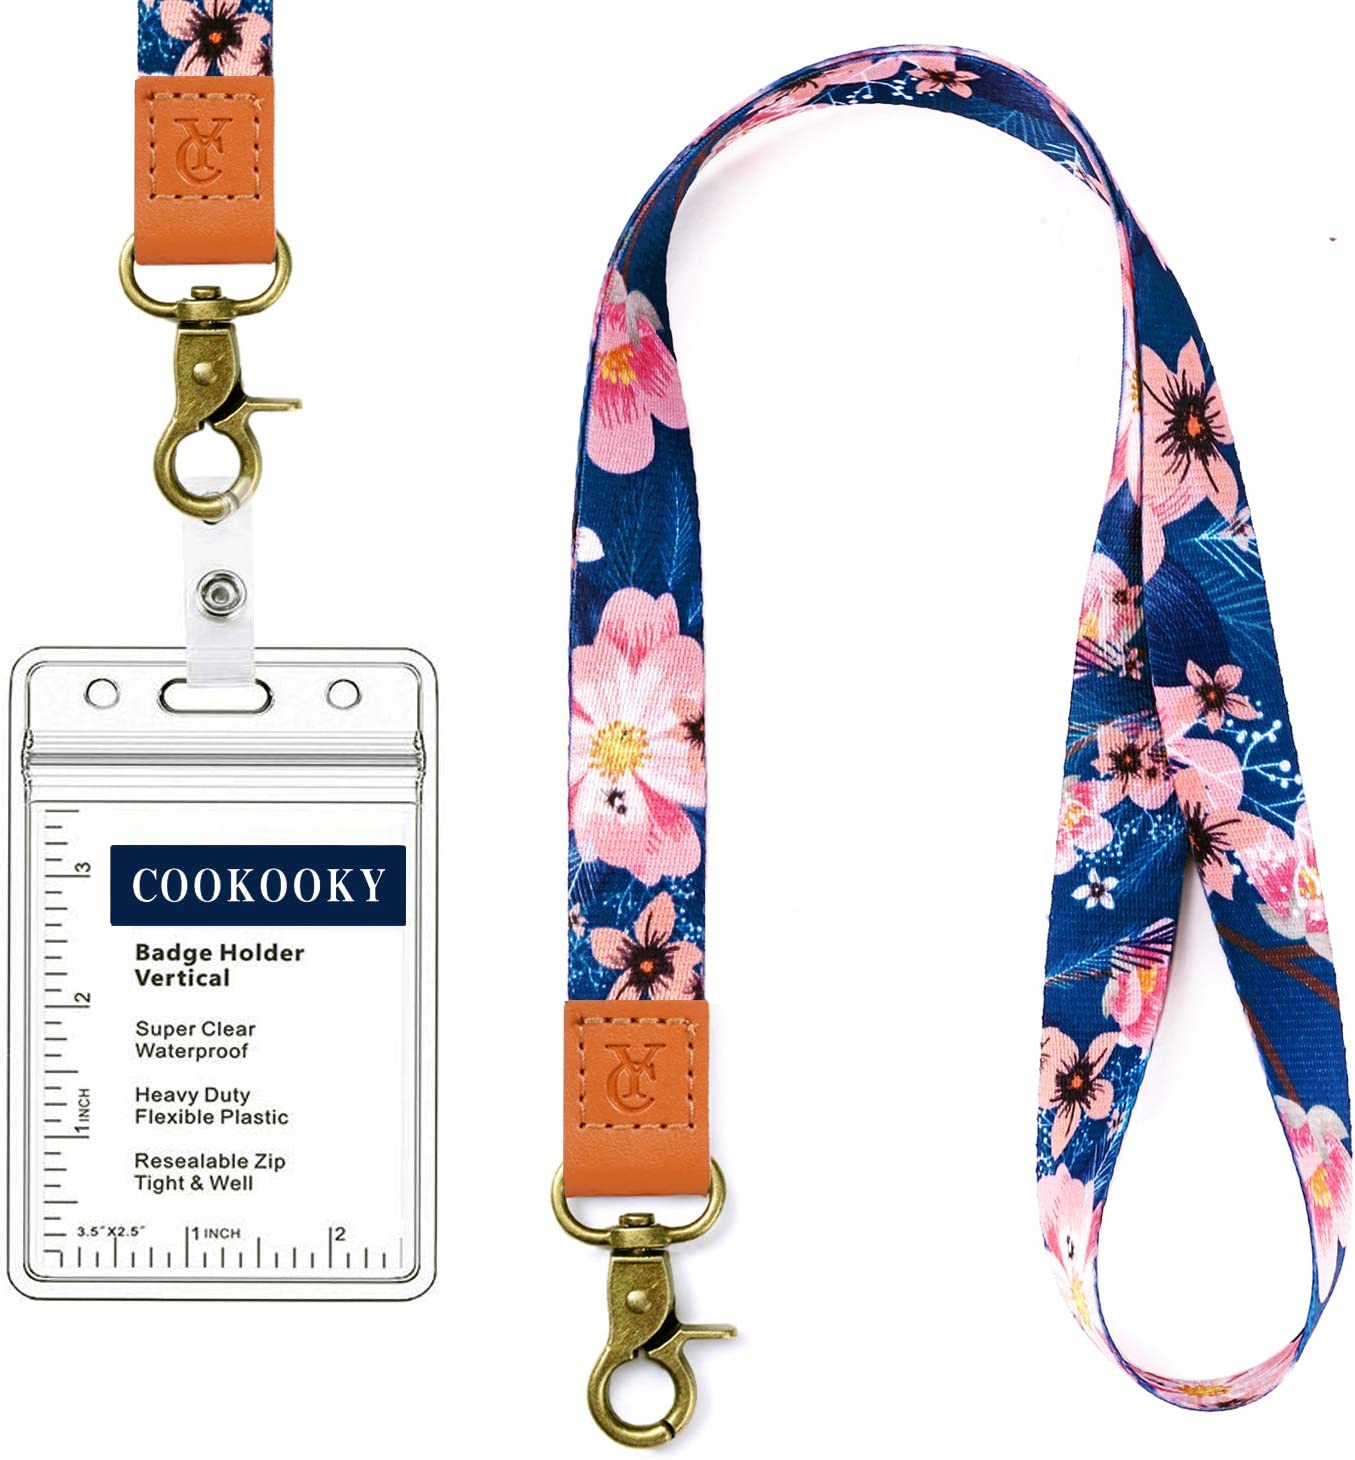 Cute Lanyard for Teacher Women and Kids Printed Neck Strap Premium Leather Lanyard for Keychain Keys Mobile Phone Wallet ID Card SUPGALIY Lanyard with Badge Holder Strap 2020 Christmas Ornament